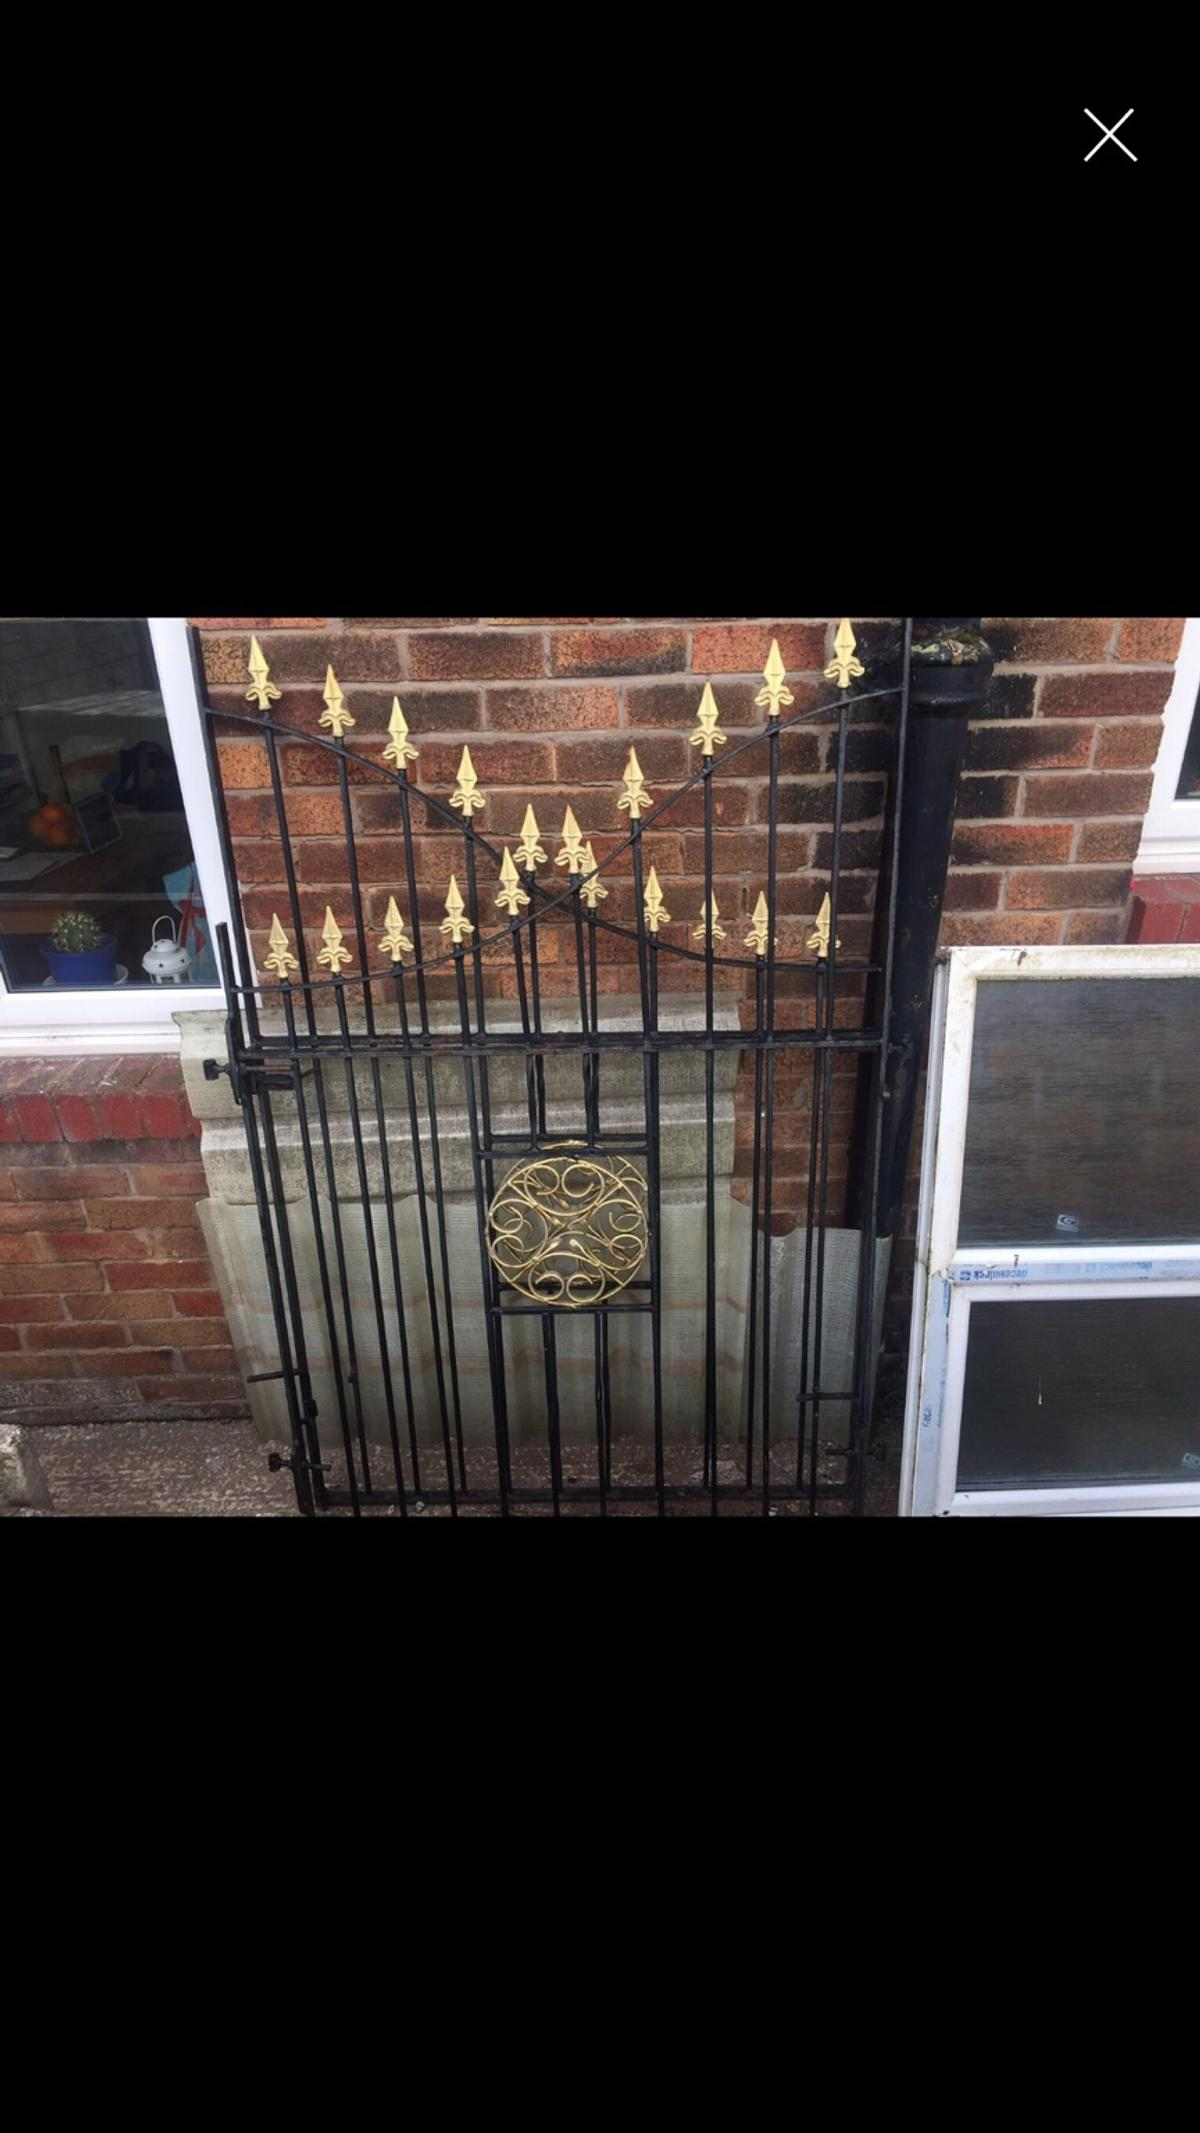 Width 2280mm ( 2@1140mm) Adjustable hinges to approx 125mm Highest point 1730mm Lowest point 1280mm Collection WN5 Pemberton, Wigan